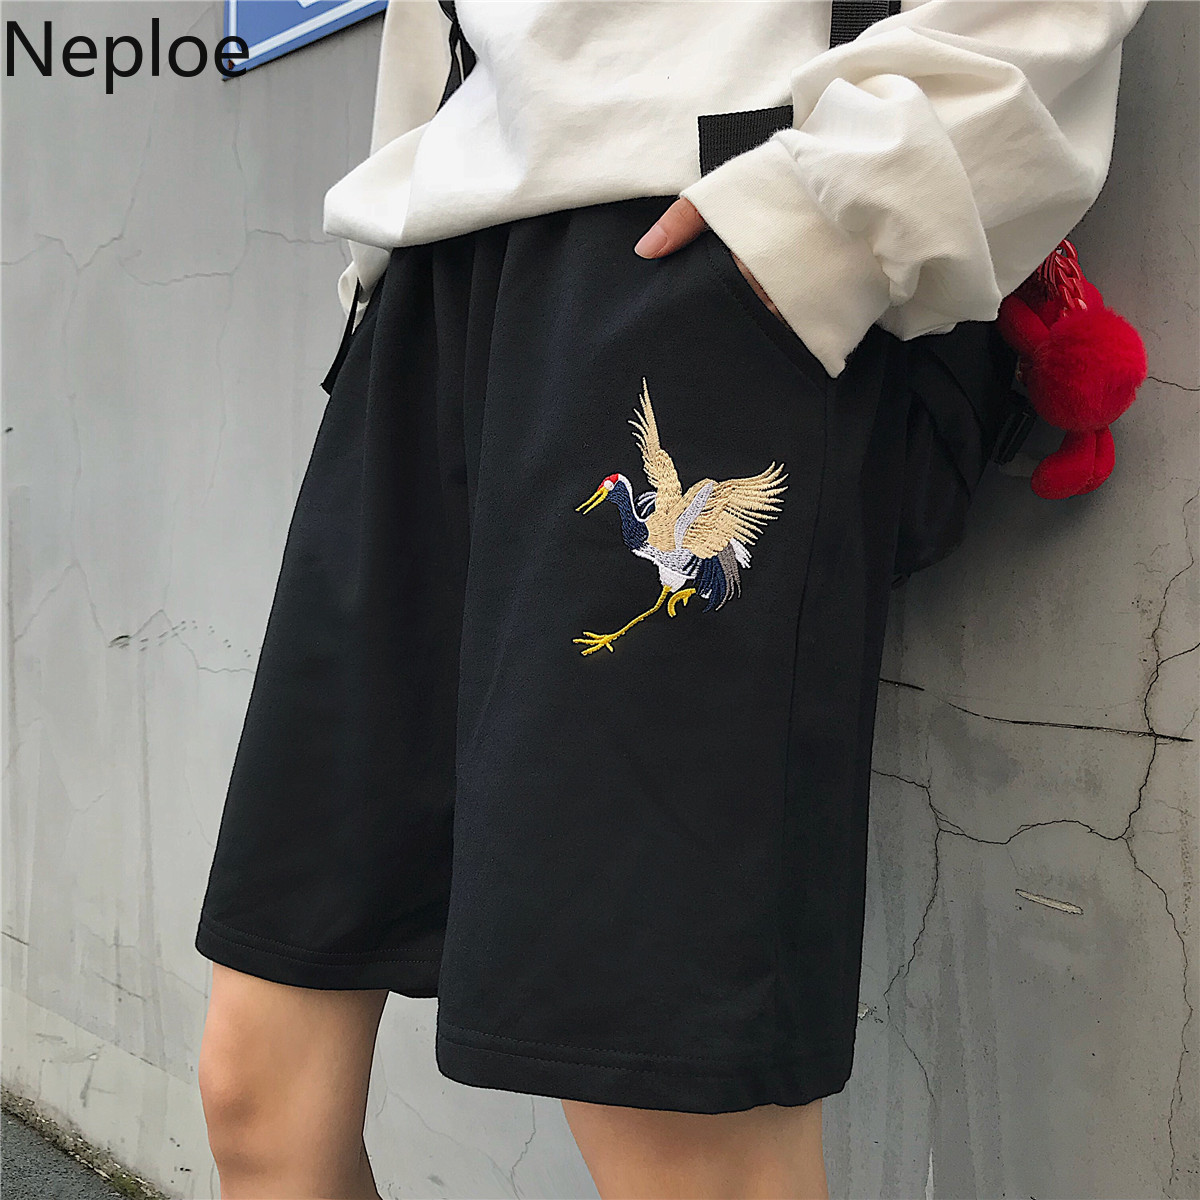 Neploe Harajuku Crane Embroidery Shorts Women Men Street Causal Bottoms 2019 Summer Stretch High Waist Wide Leg Shorts 53592(China)